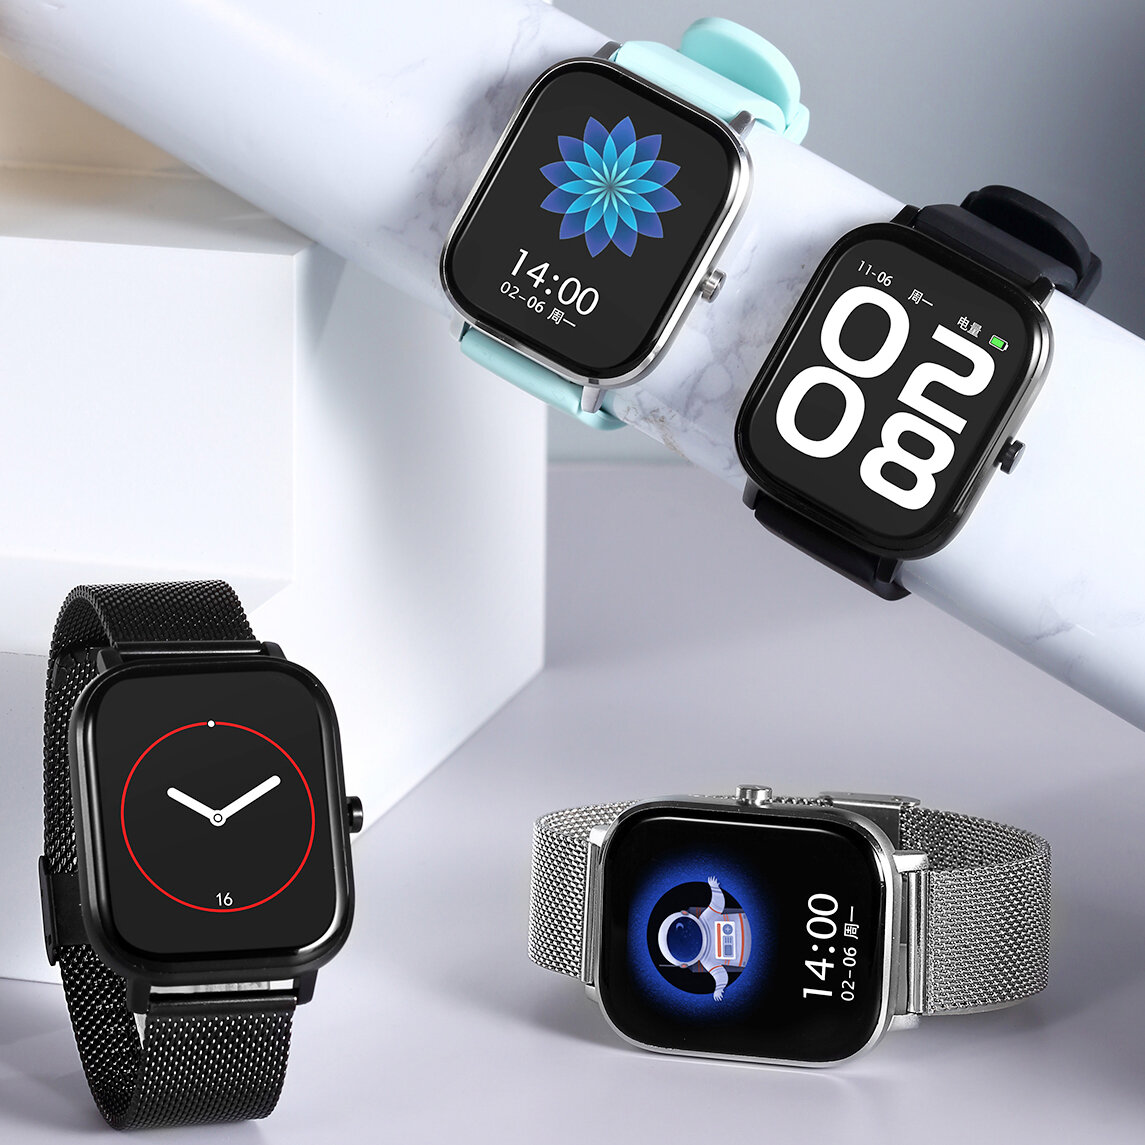 [bluetooth Call]DT NO.1 DT35+ 1.75 Inch 320*385px Screen AI Voice Assistant ECG Heart Rate Blood Pressure SpO2 Monitor Multi-language Support Smart Watch